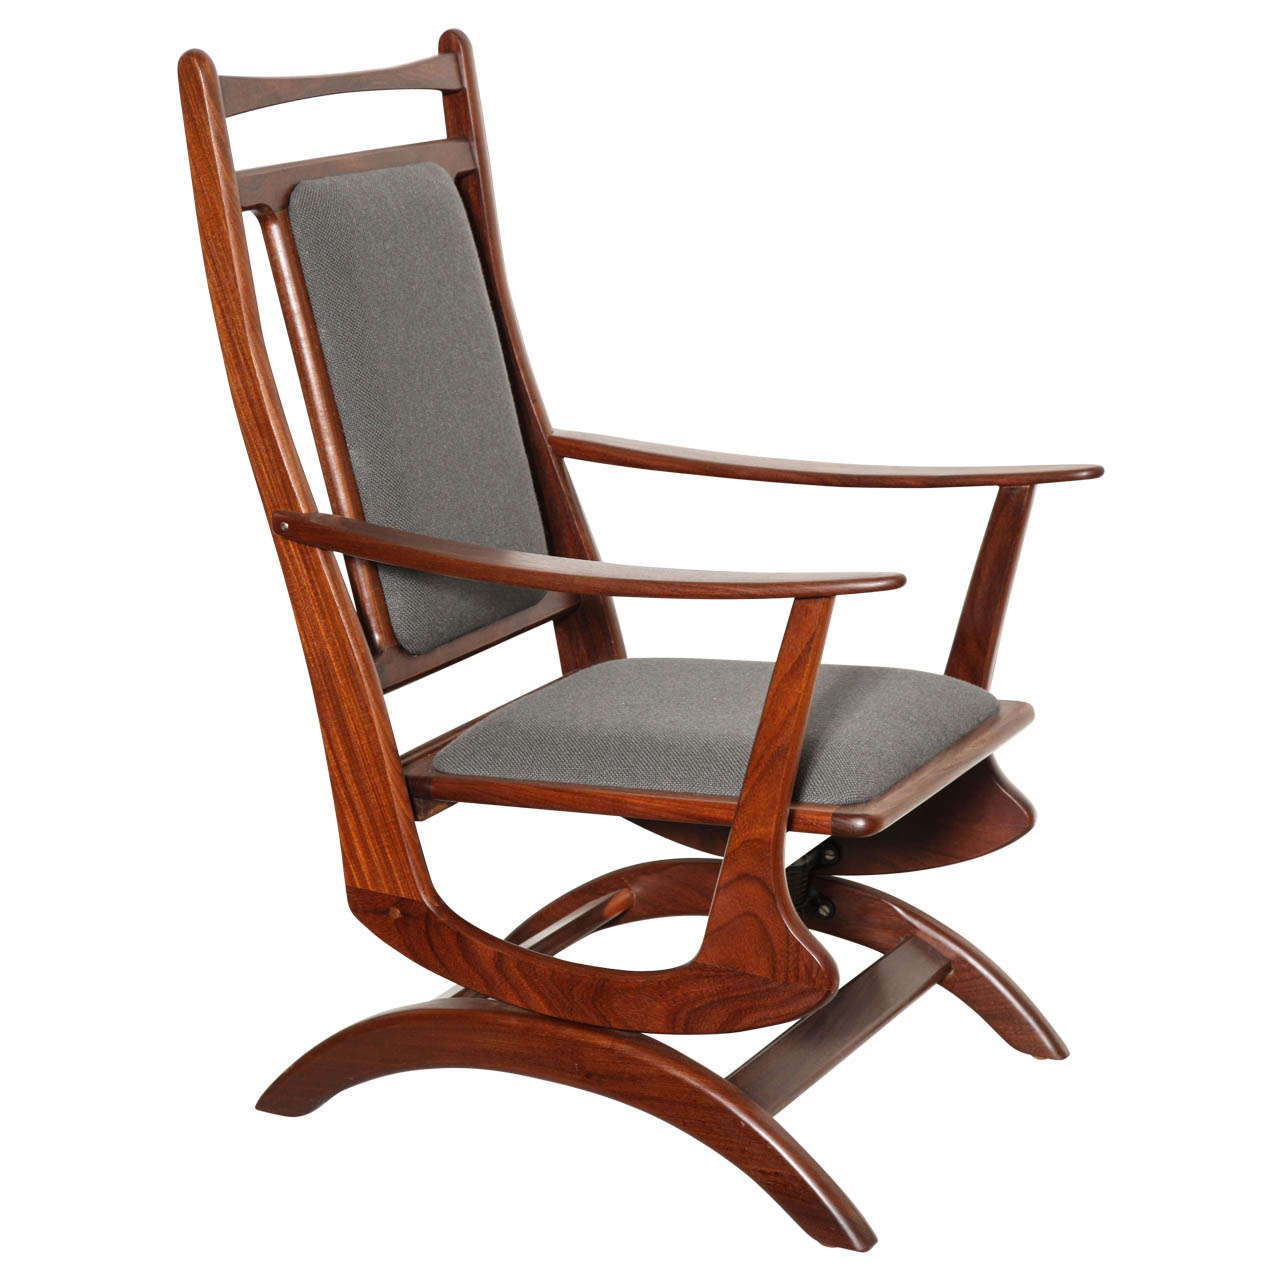 Danish vintage rocking chair at 1stdibs for Rocking chair